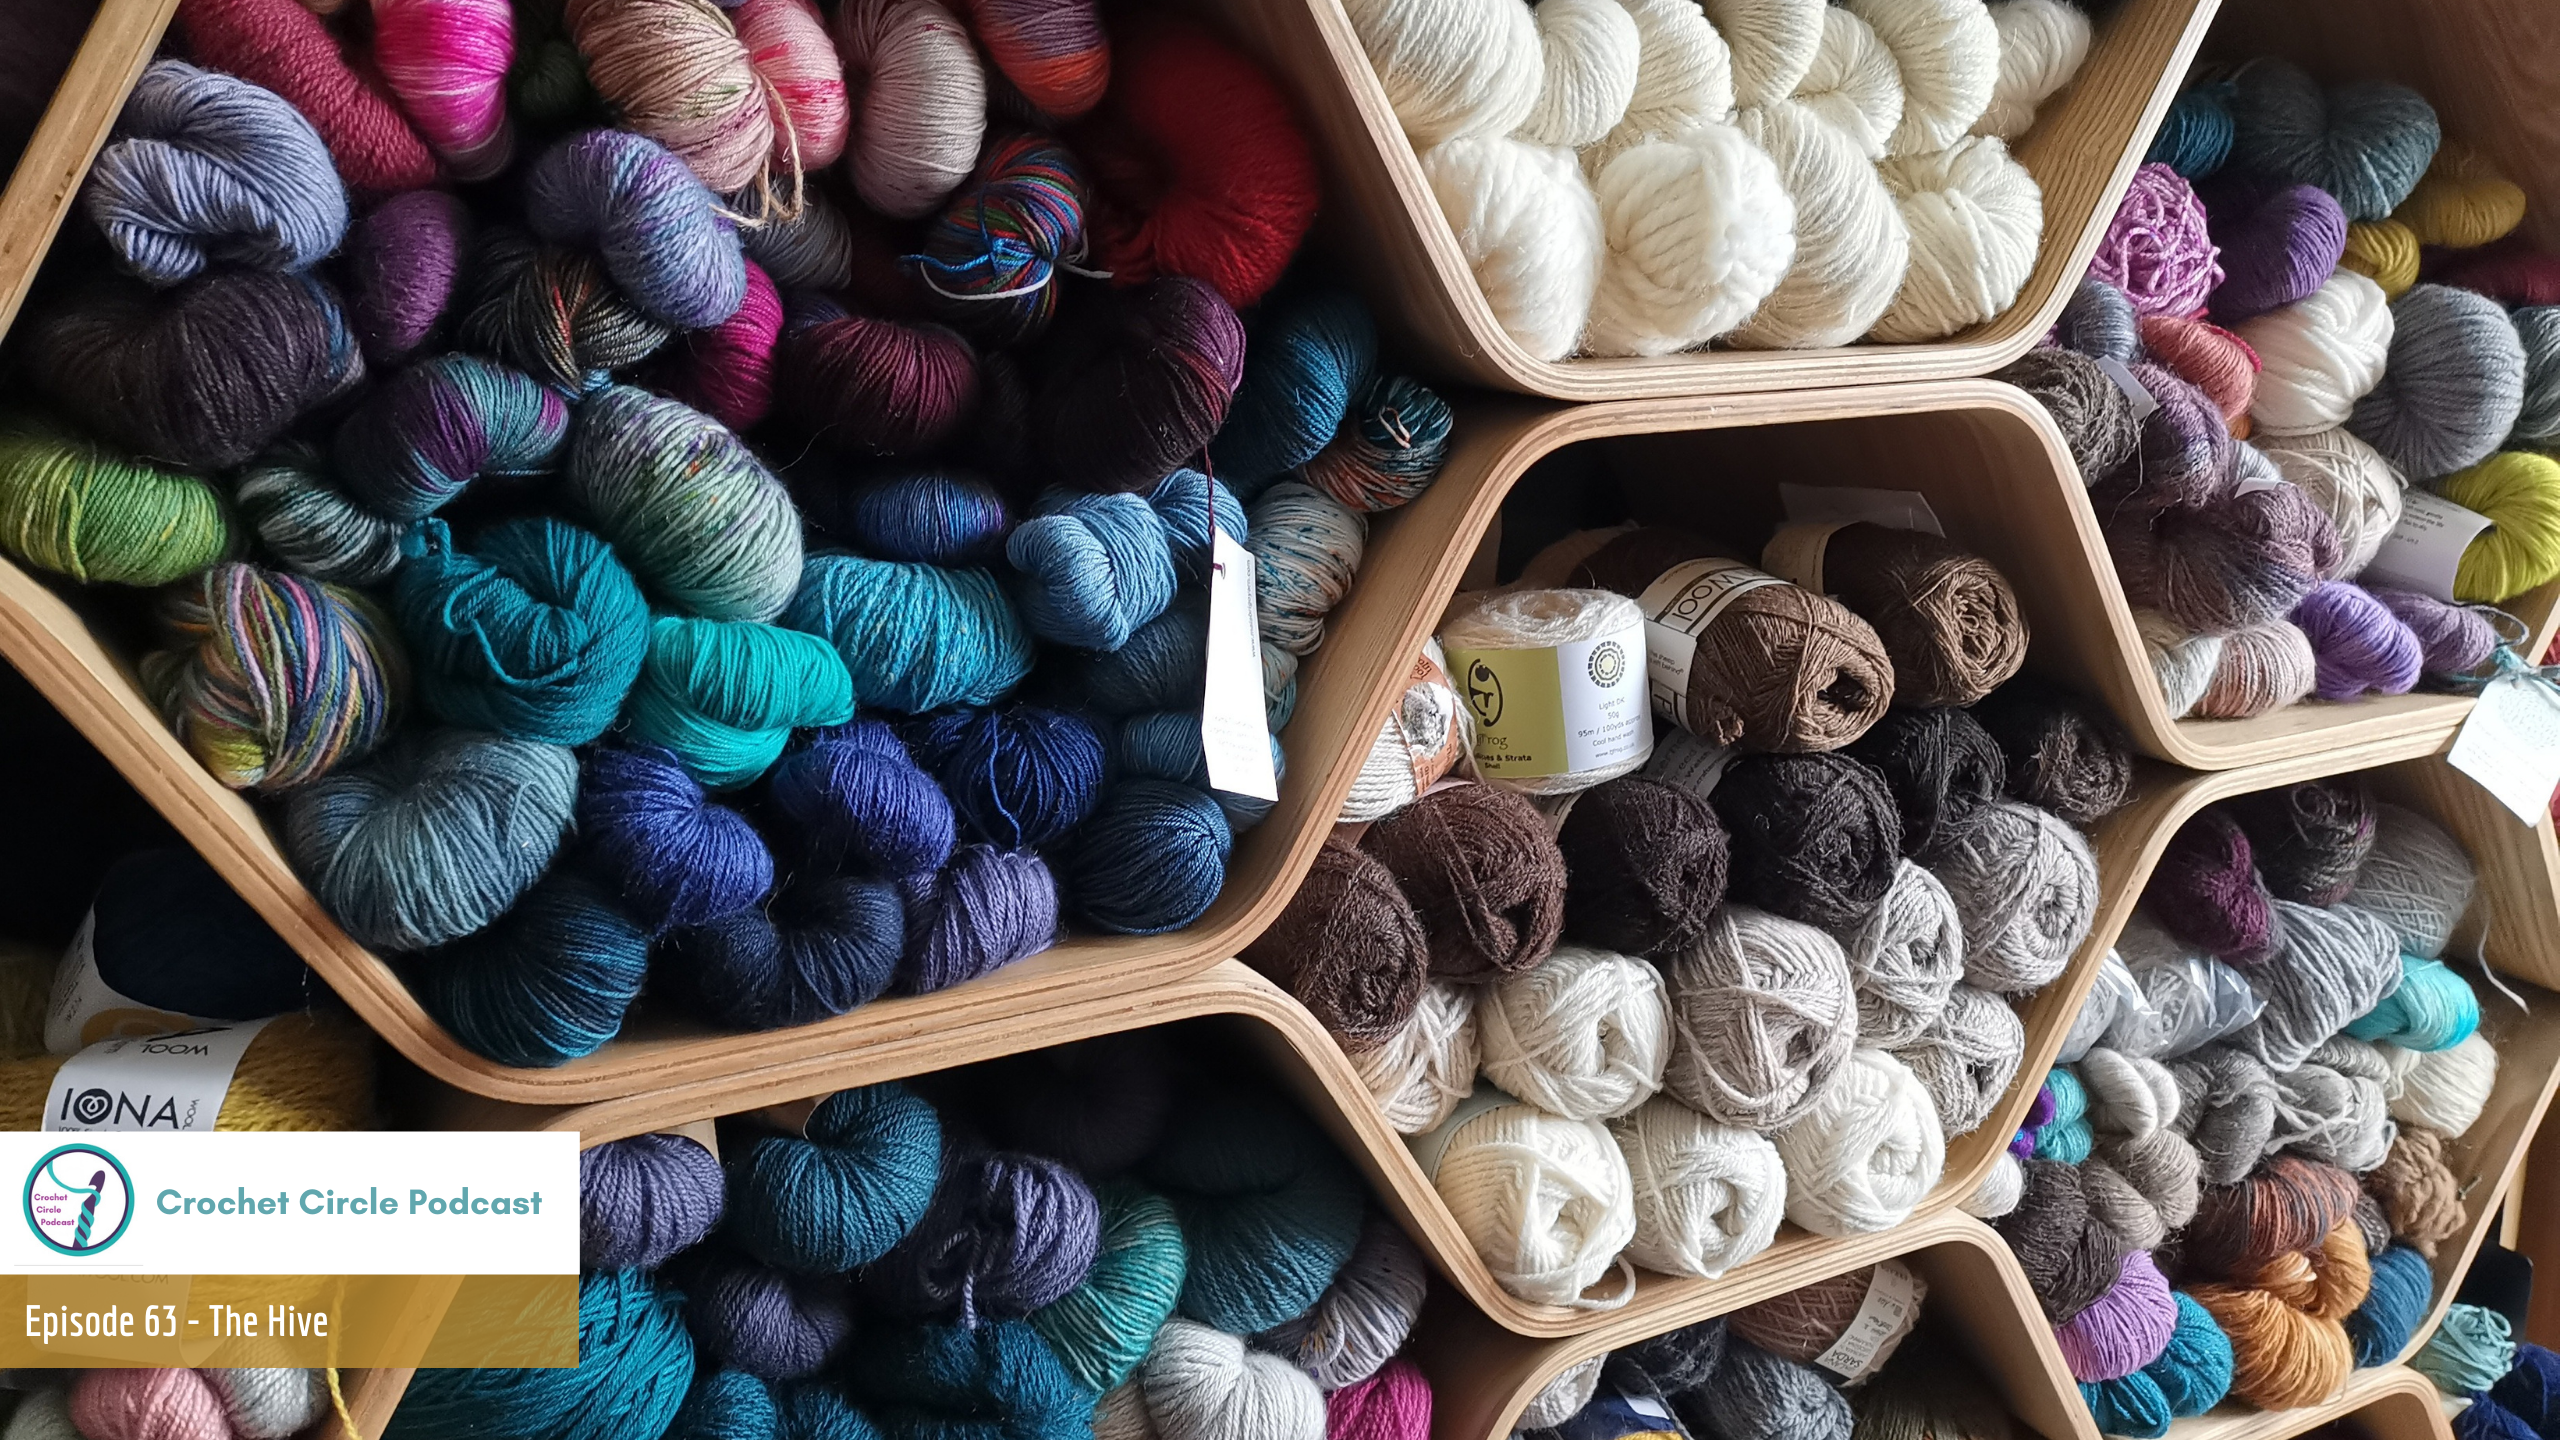 Episode front cover showing shelves full of colourful yarn